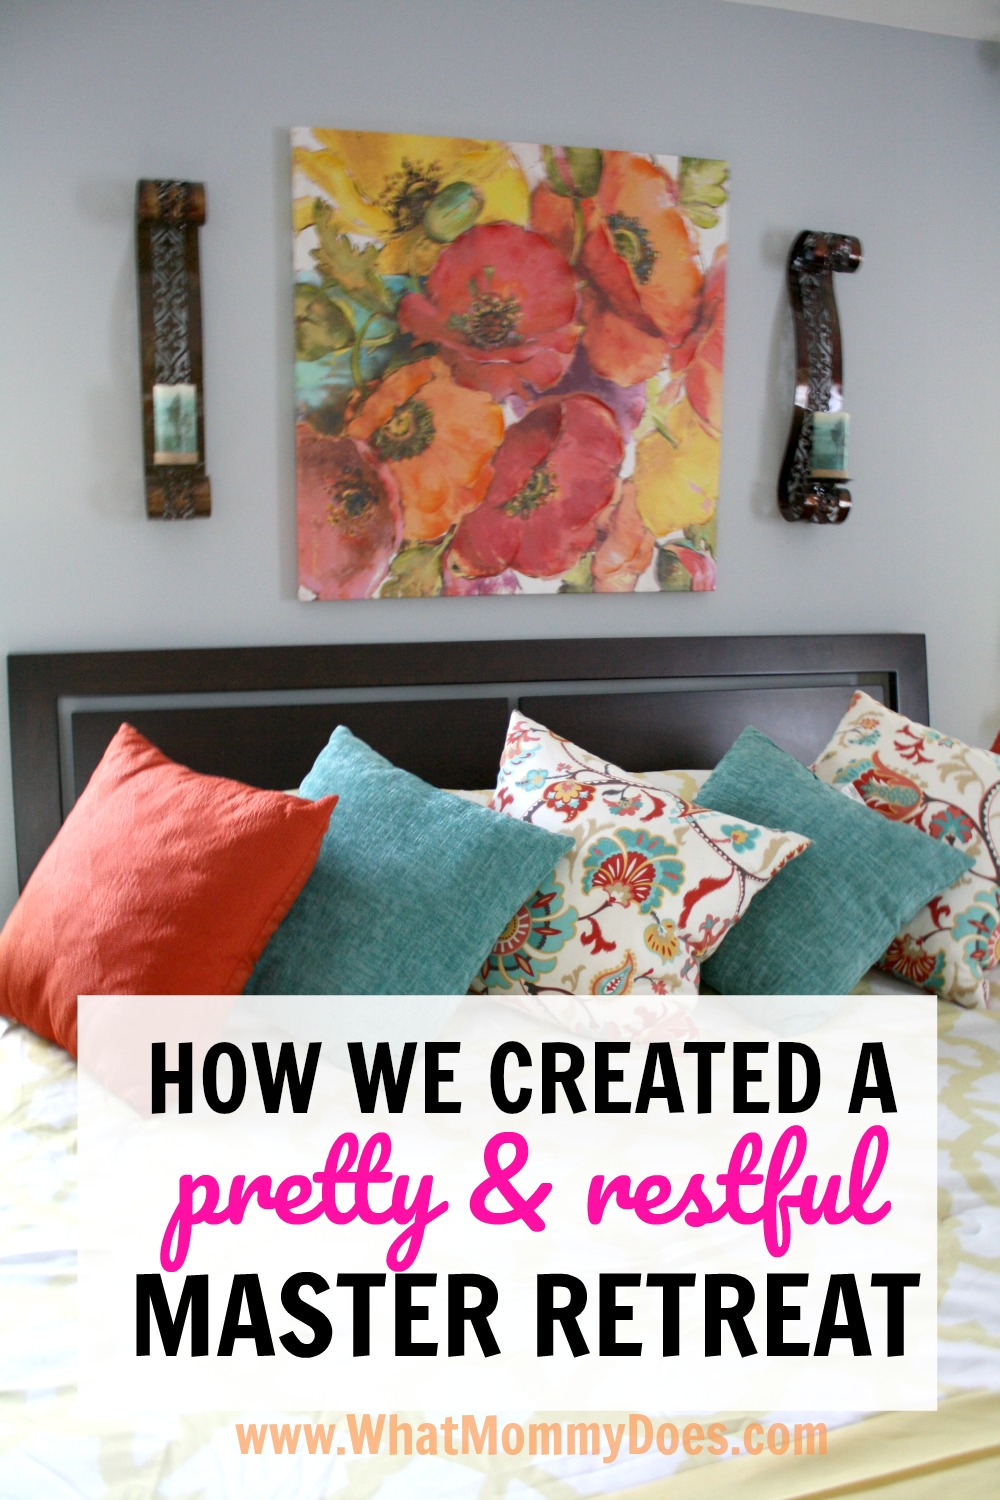 We wake up more rejuvenated each night after making these changes! You won't believe how easy this is to maintain. We got rid of dust + relief from allergies by making these changes. This is not just bedroom cleaning tips, but how to overhaul your room! | dust allergy hacks, home allergy cleaning